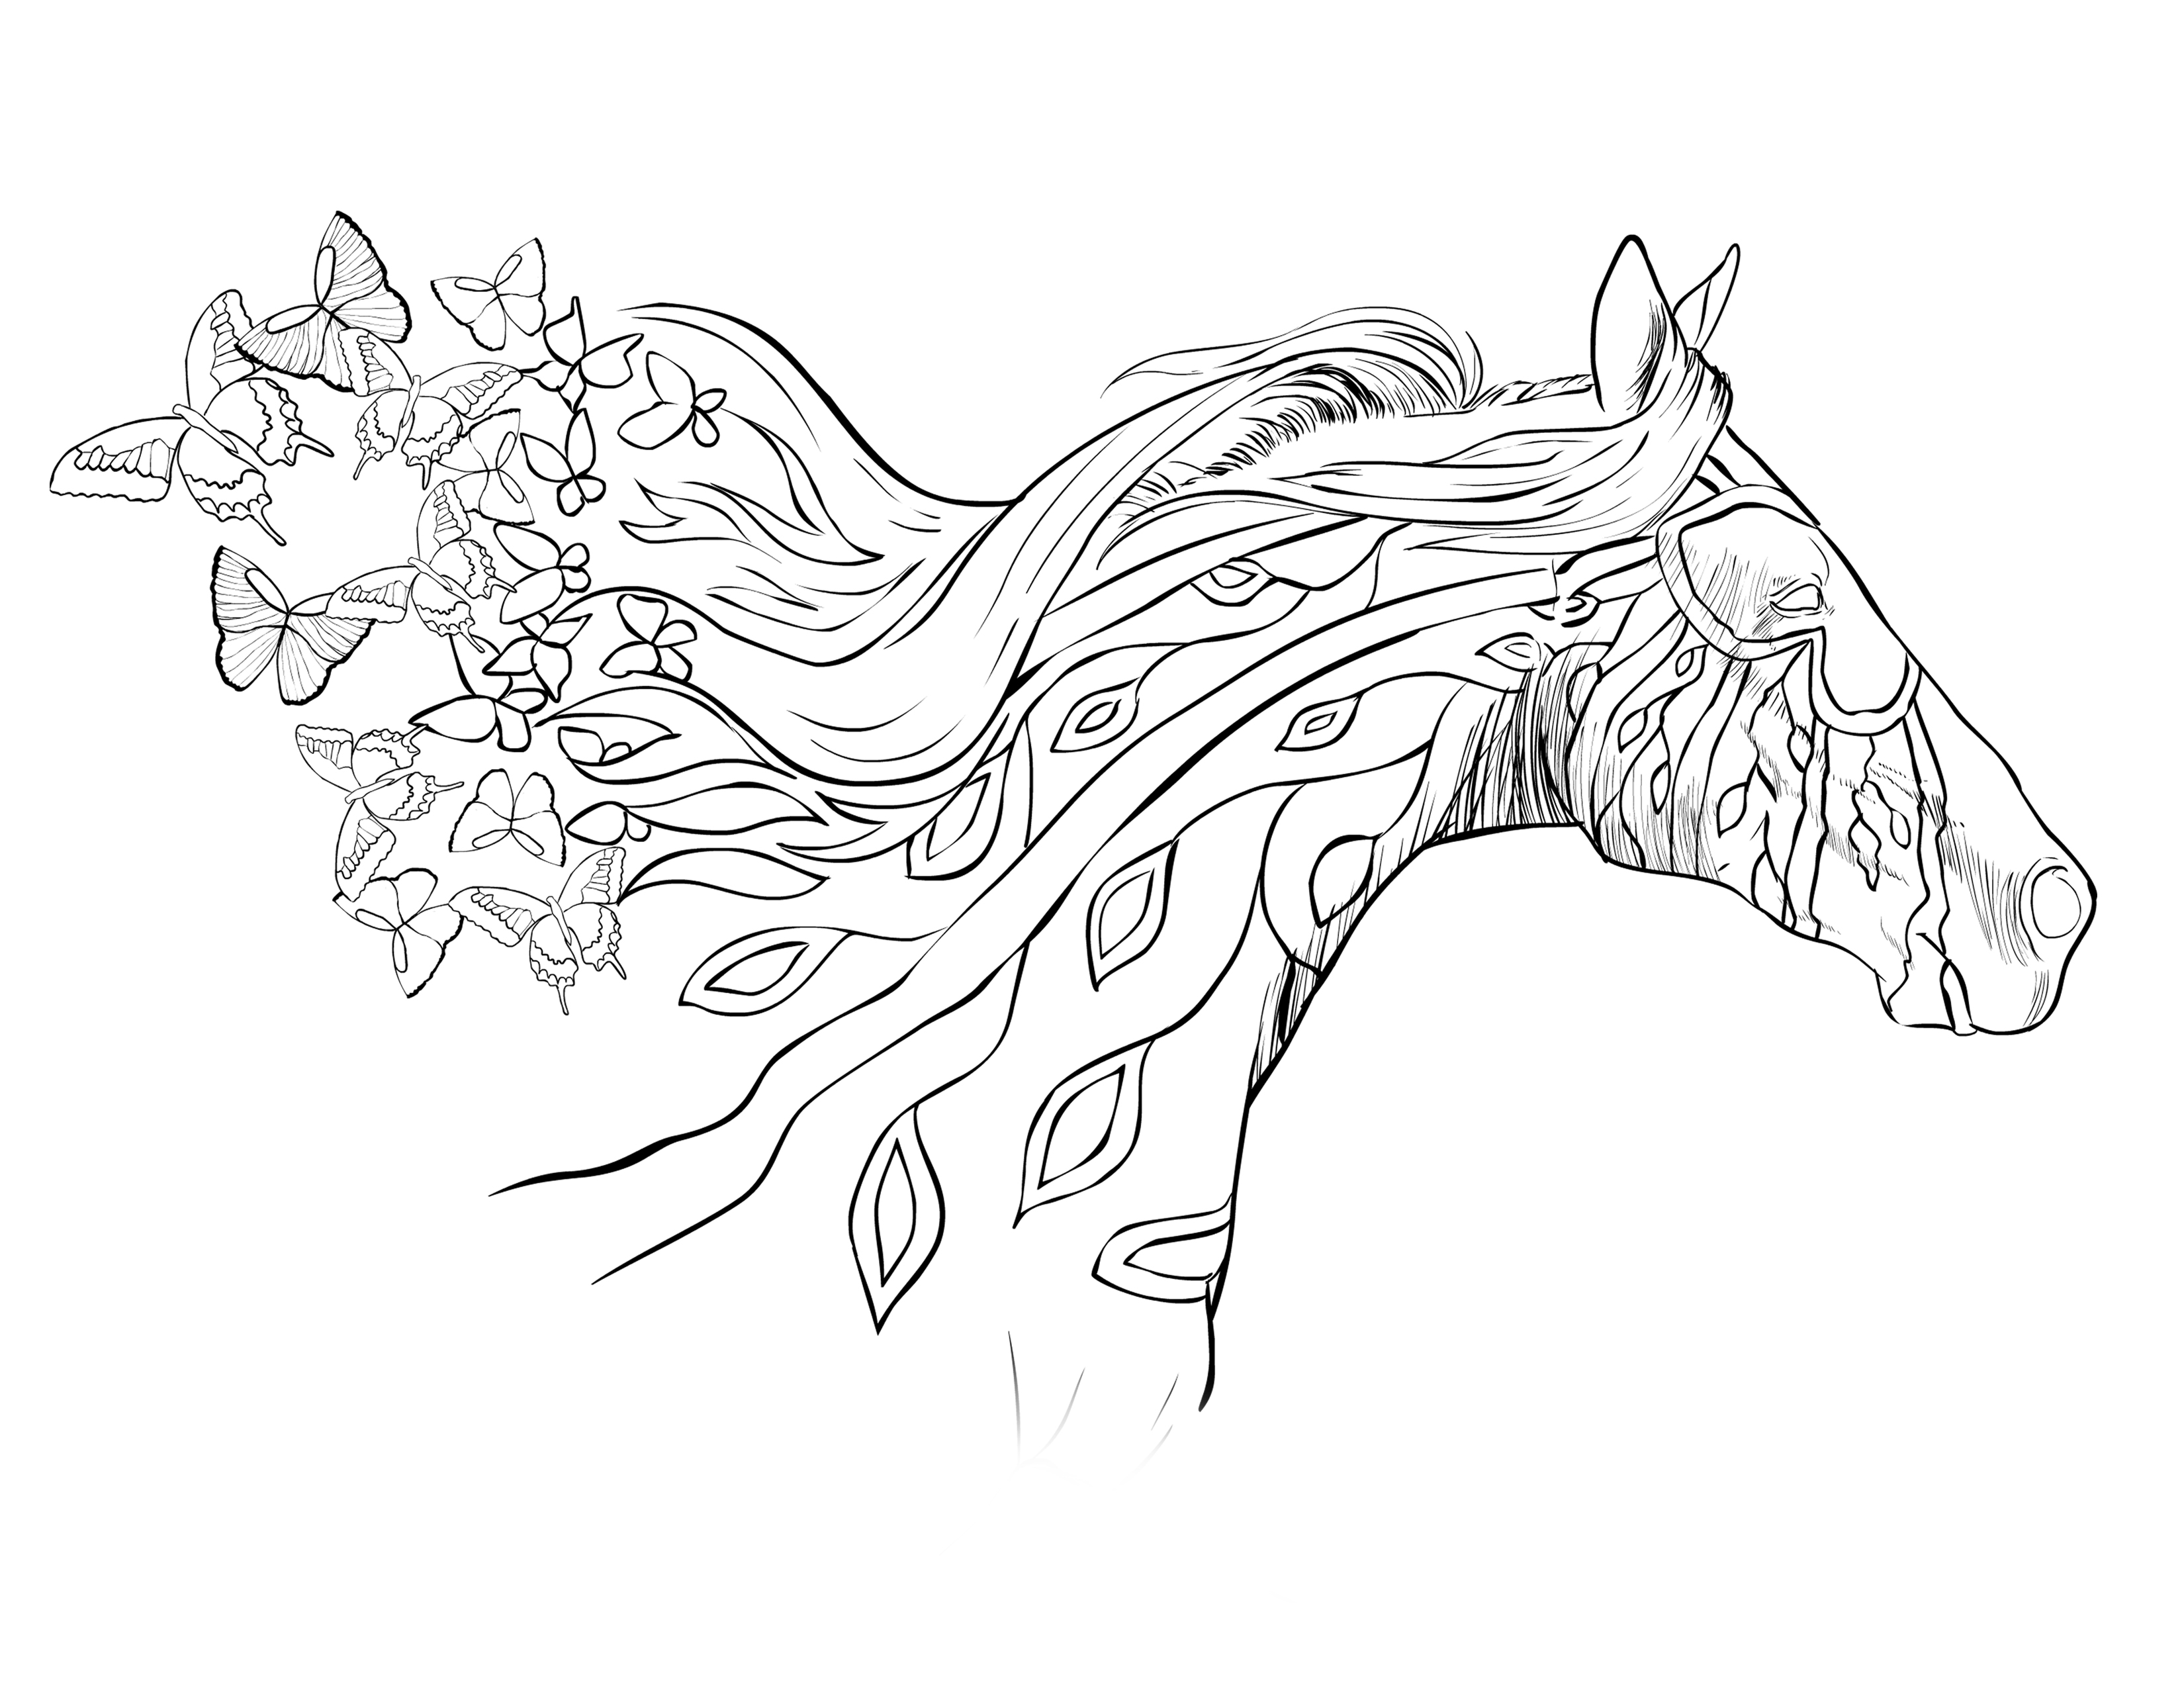 3300x2550 Horse Coloring Page Free Download Selah Works